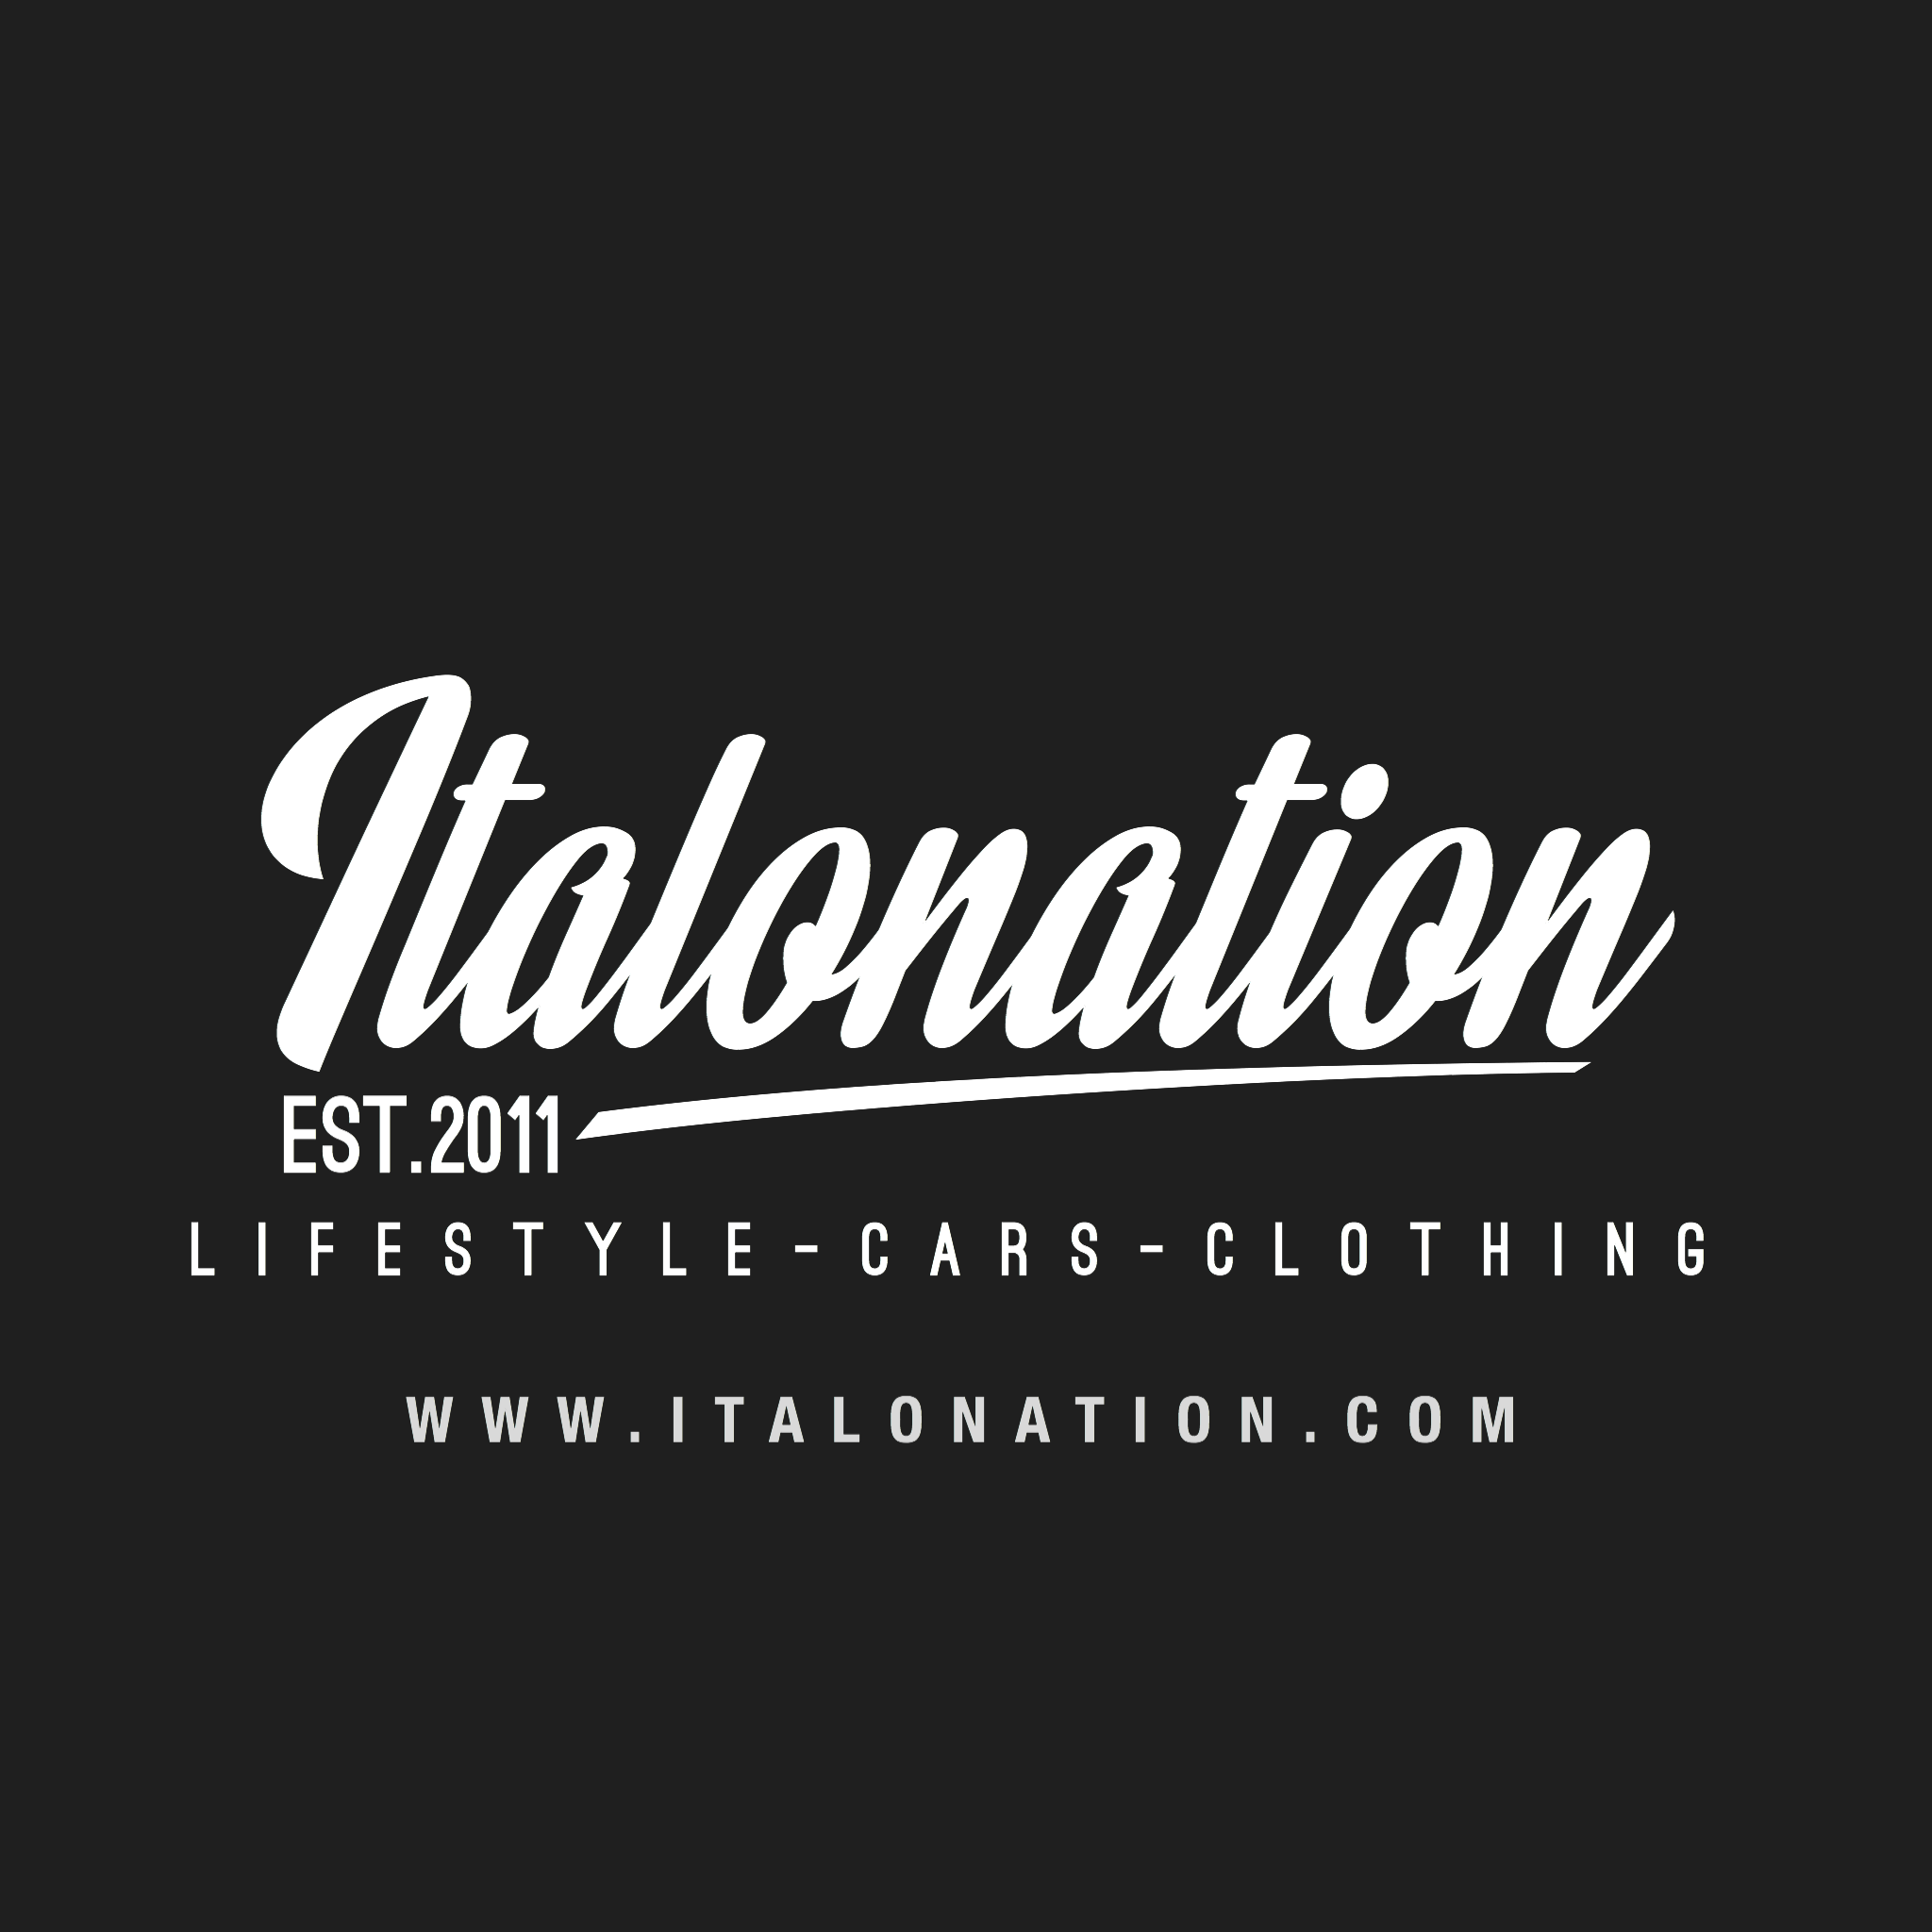 Italonation Worldwide